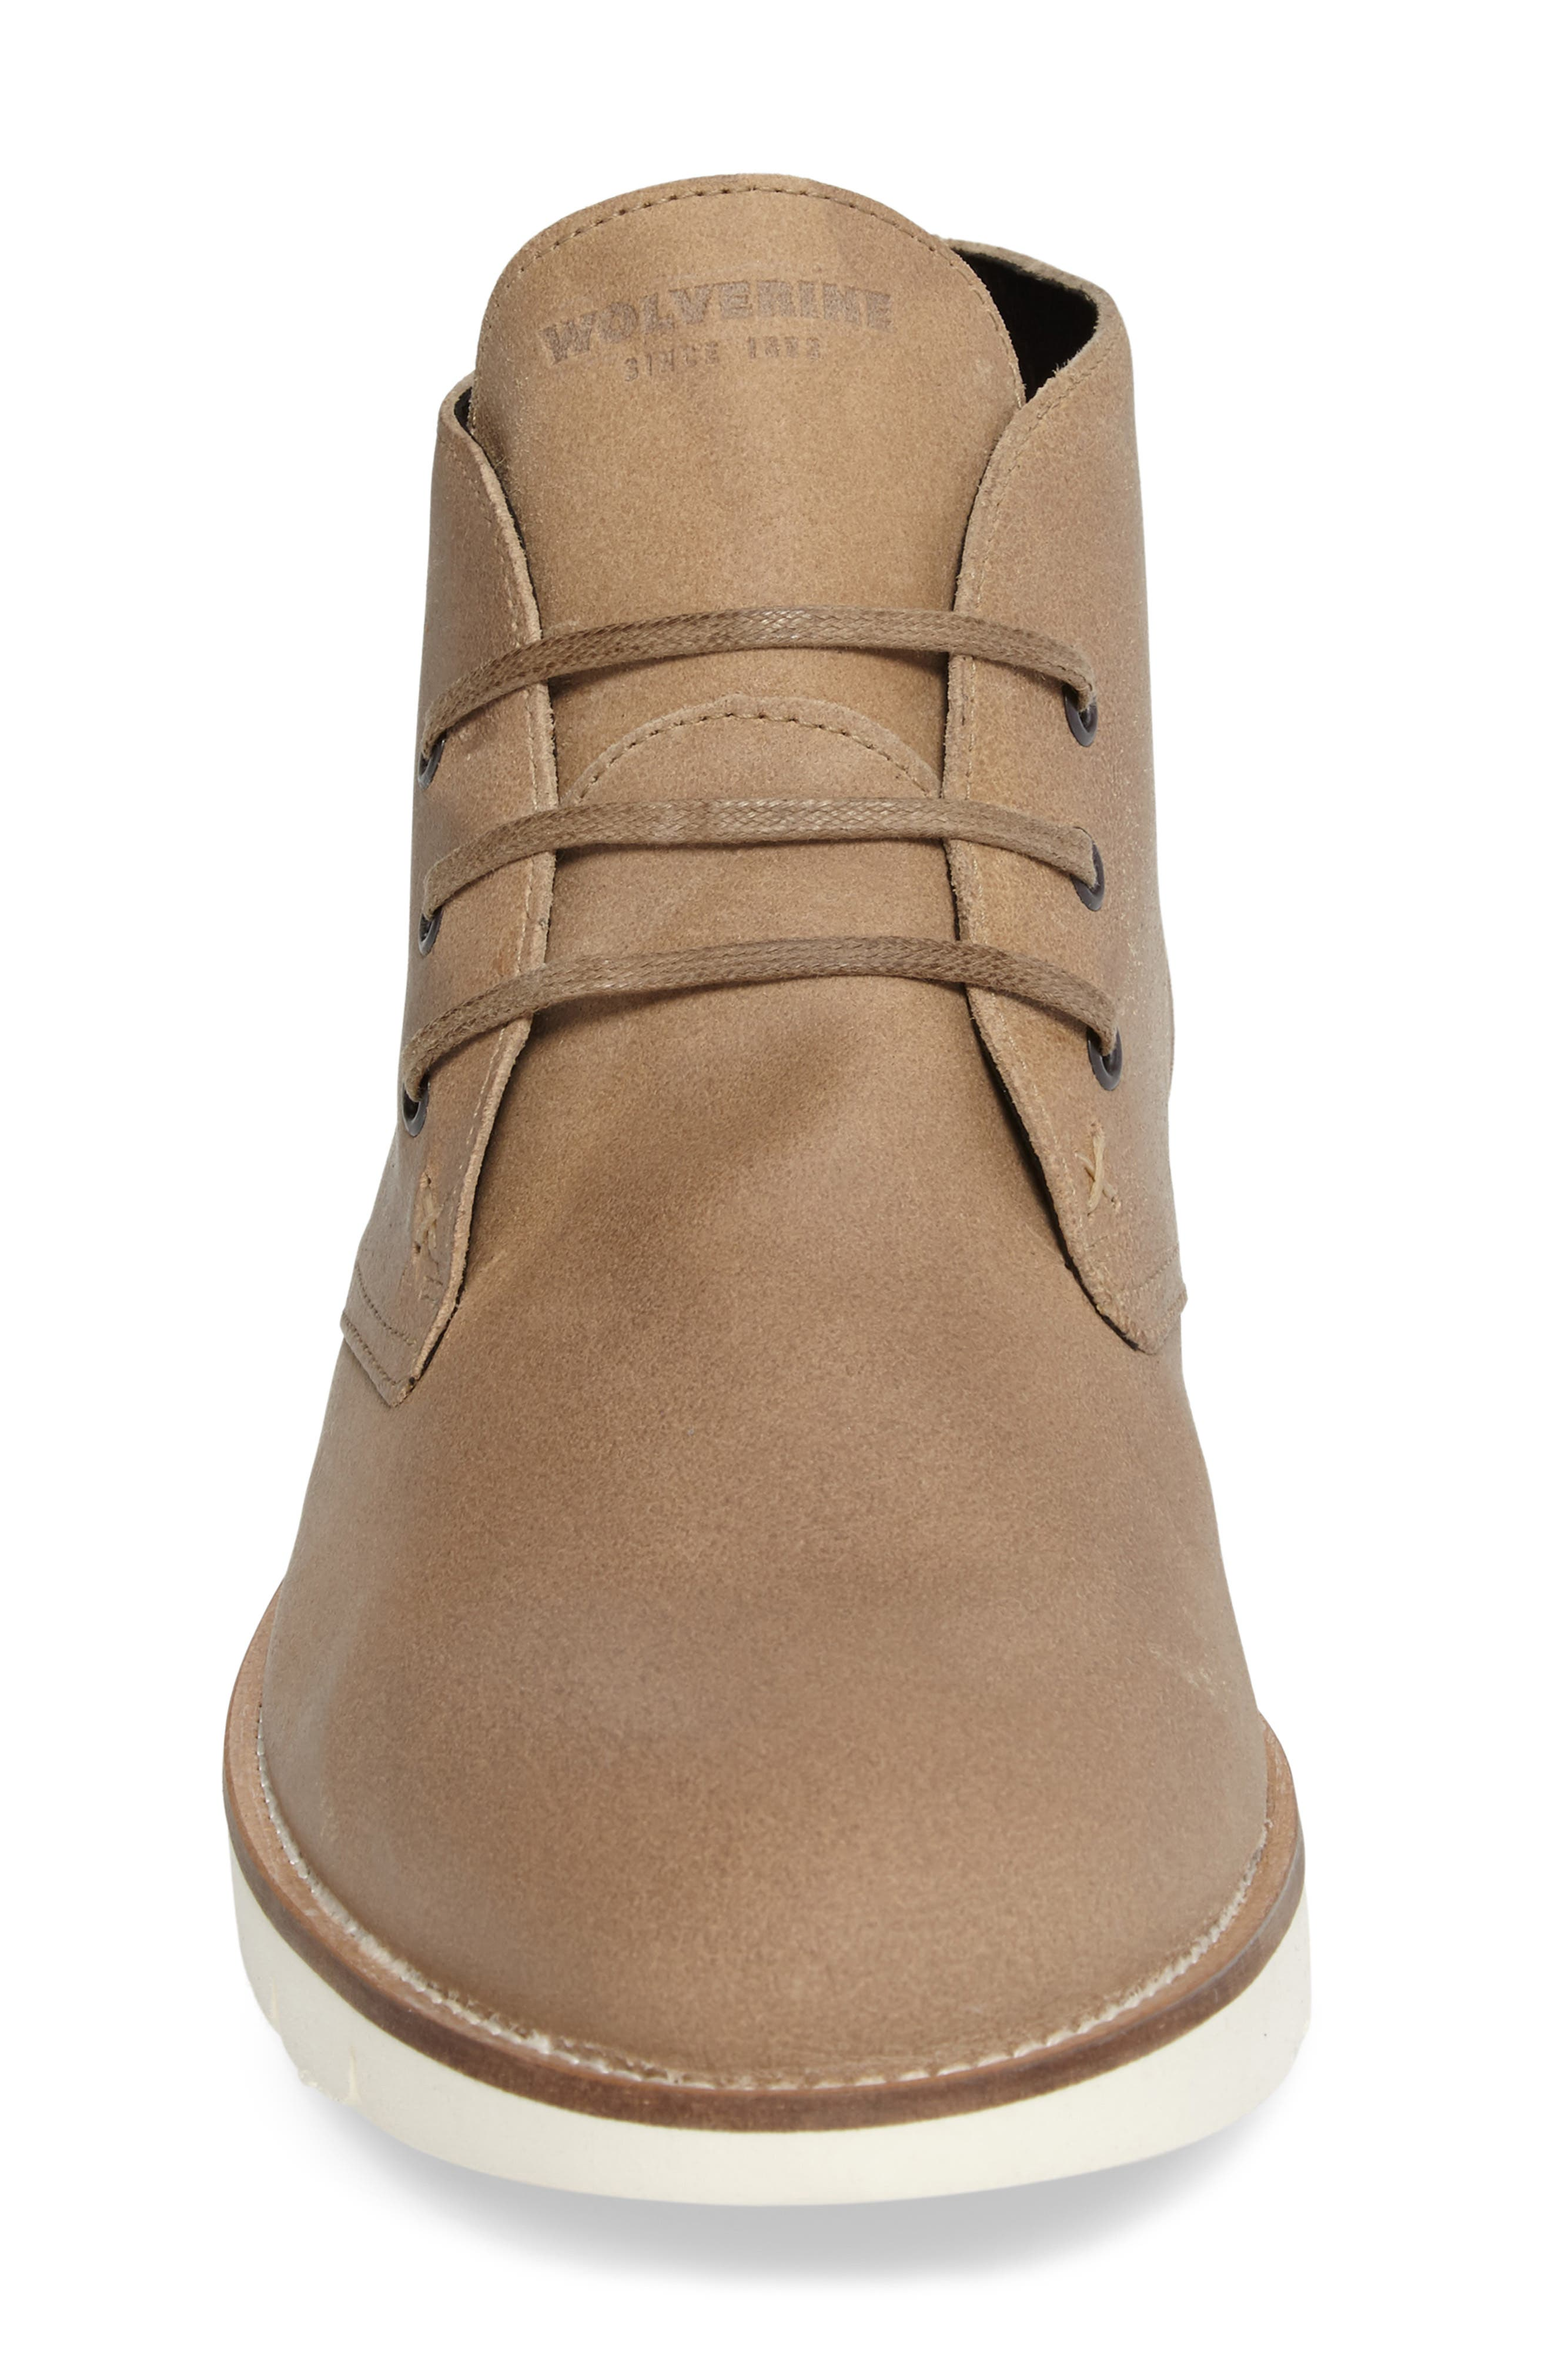 Gibson Chukka Boot,                             Alternate thumbnail 4, color,                             200